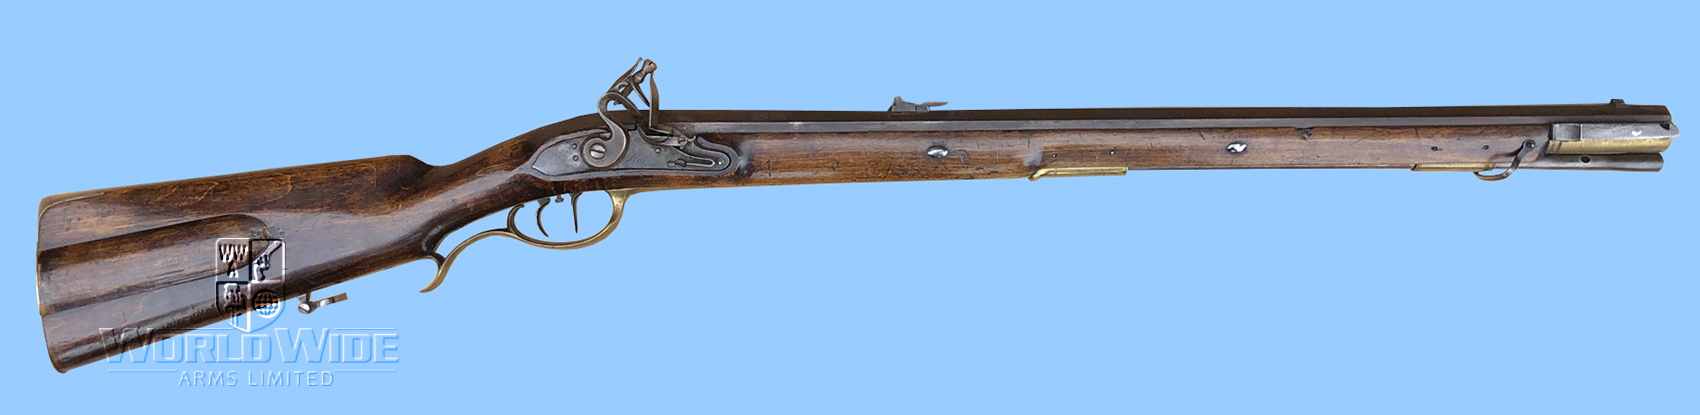 G667  German Jaeger Antique Flintlock Hunting Rifle - World Wide Arms